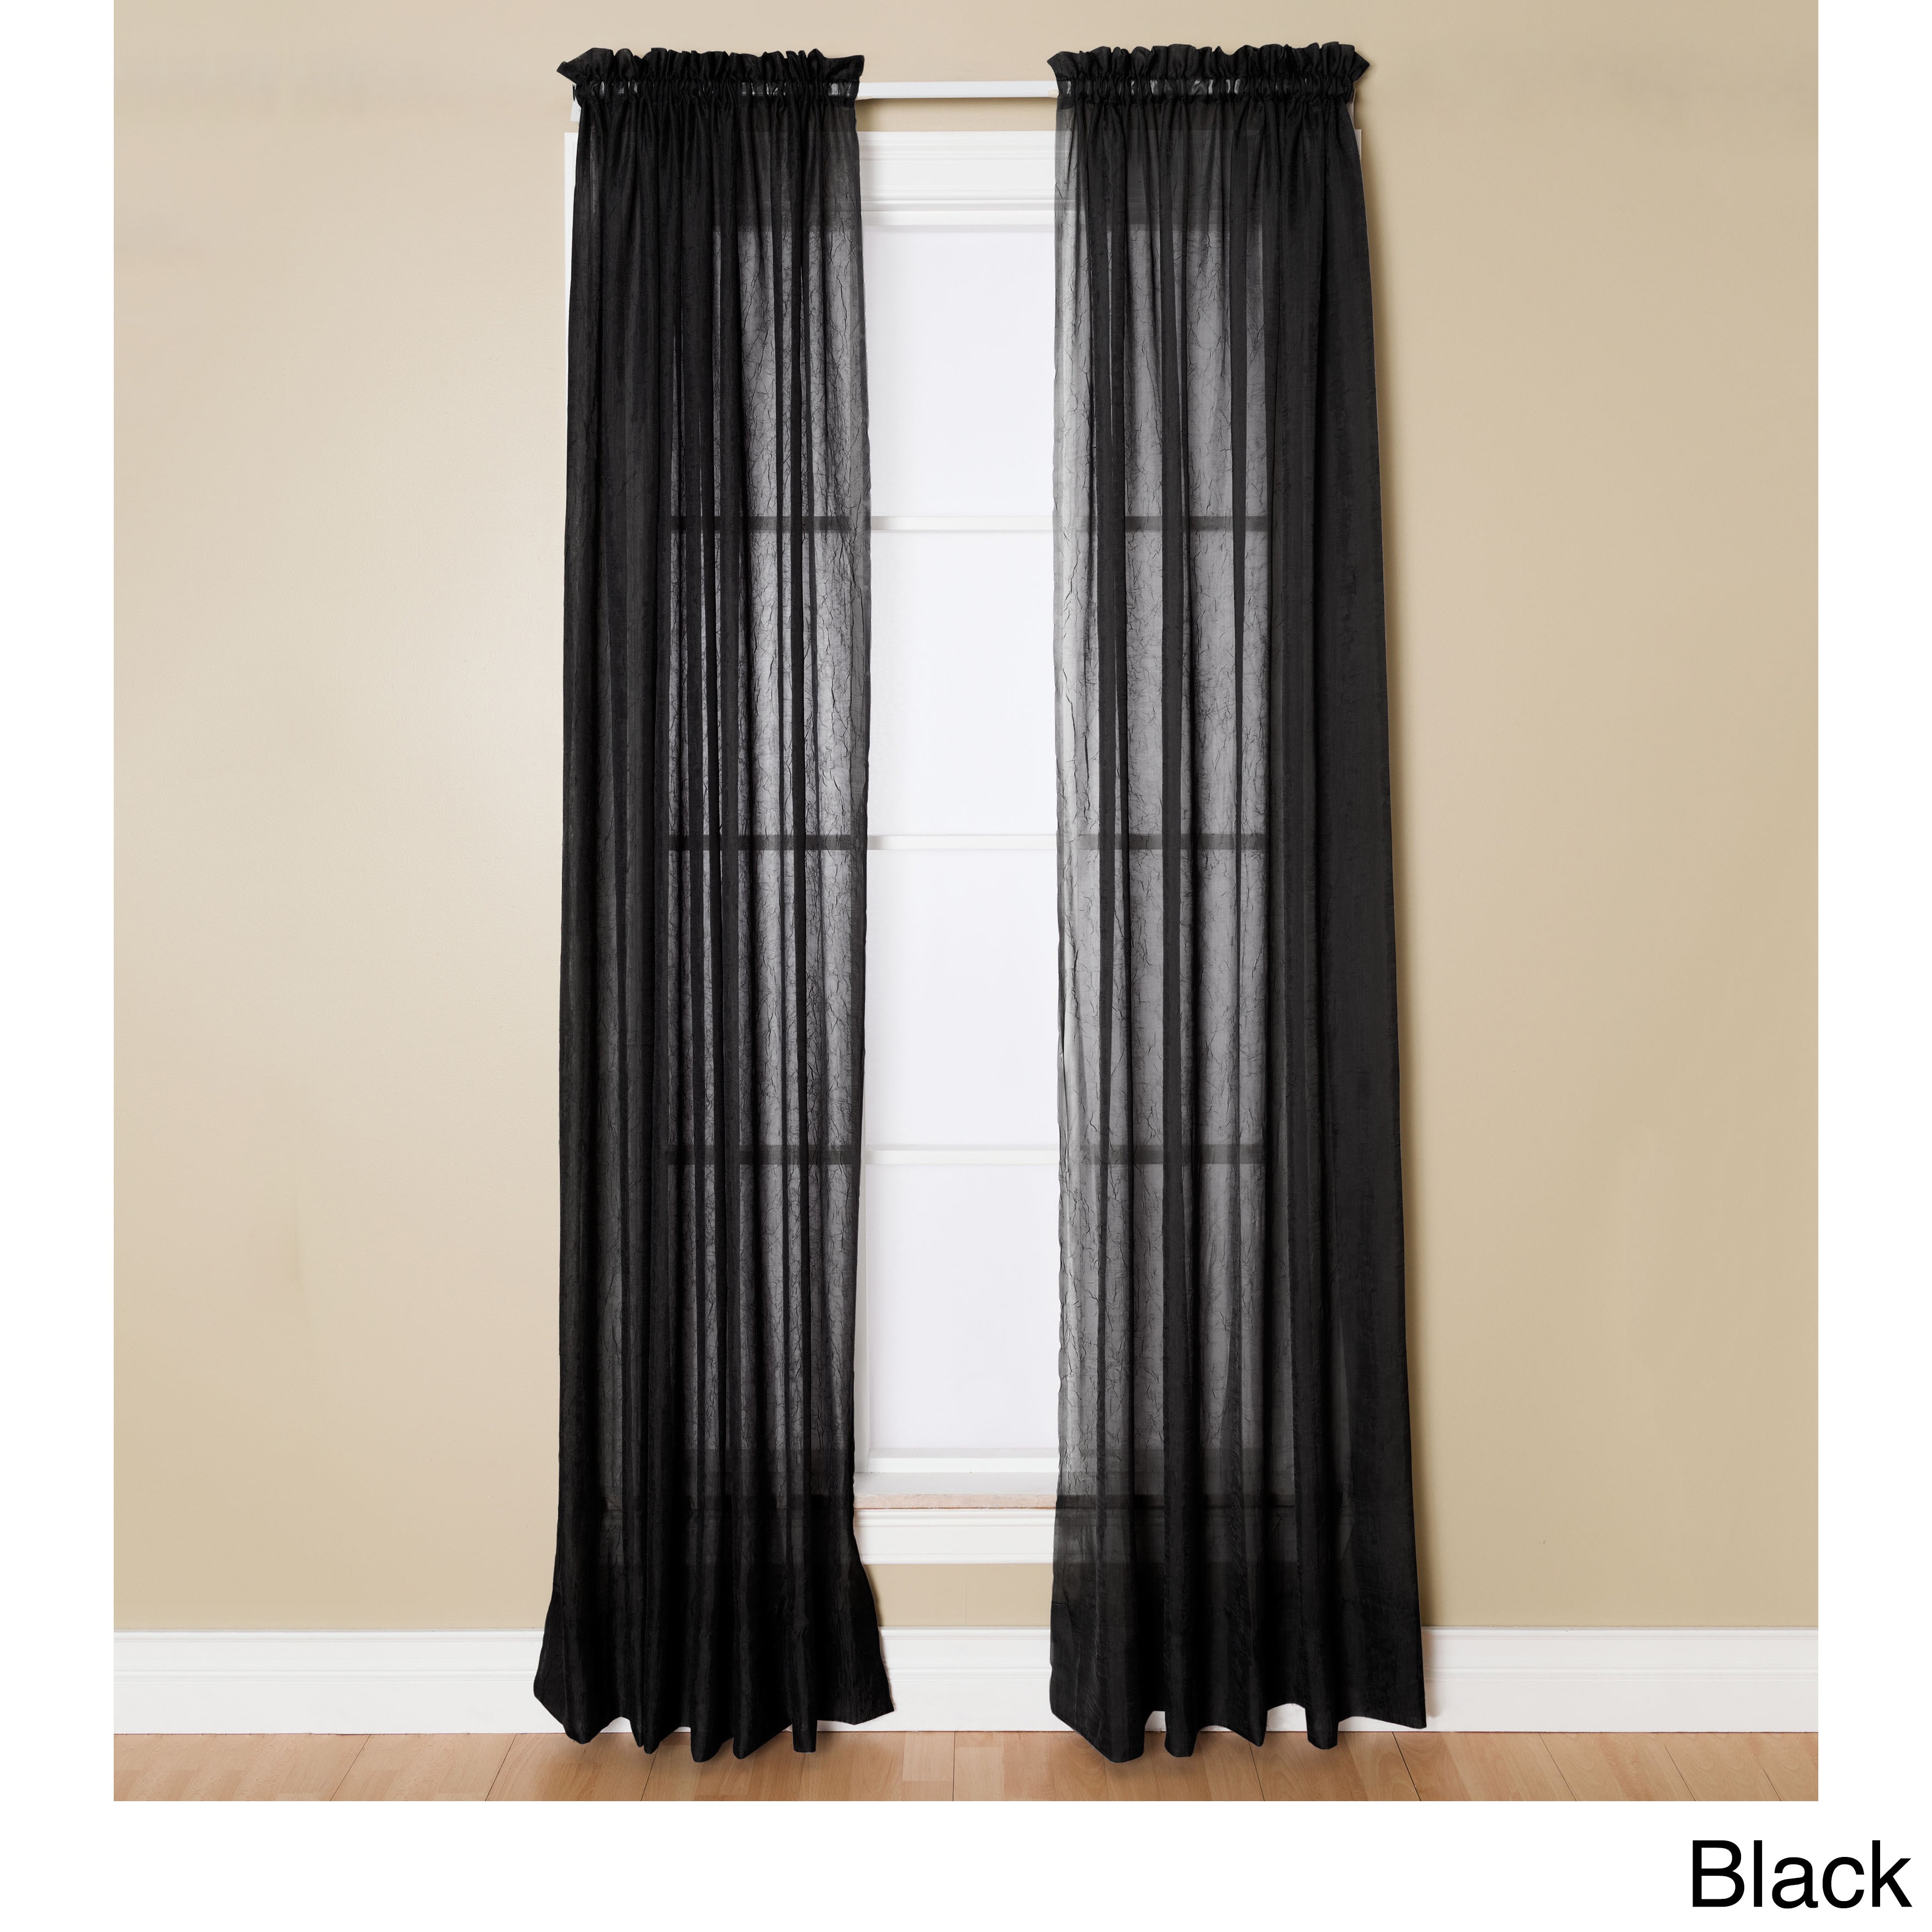 Black 108 Inches Curtains D Online At Our Best Window Treatments Deals